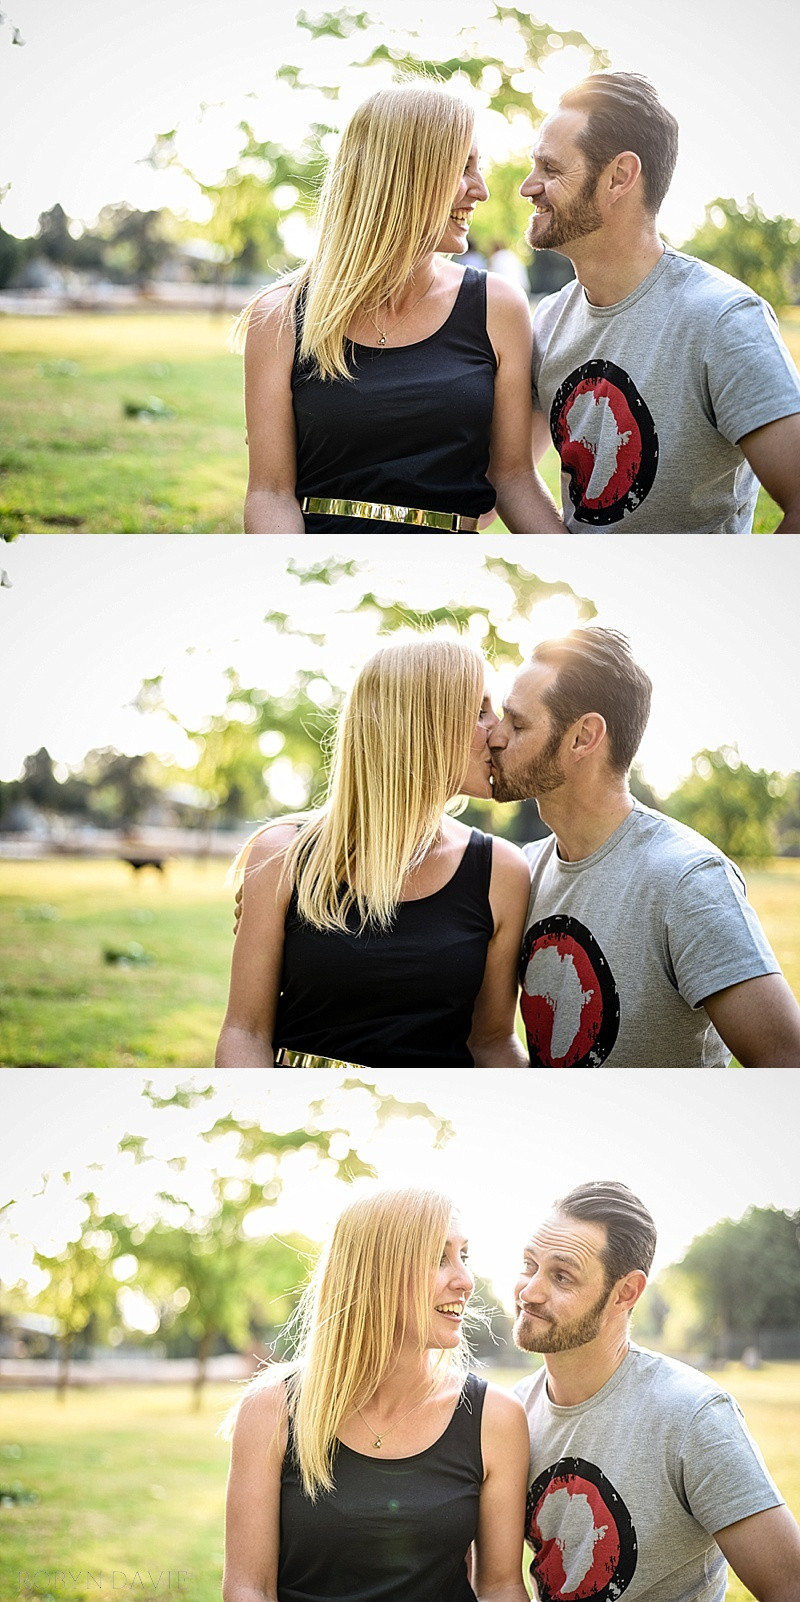 robyn davie photography, top wedding photographers johannesburg, the pretty blog wedding photographers, event and wedding suppliers south africa, black book collective weddings and events, tips for wedding success, robyn davie weddings